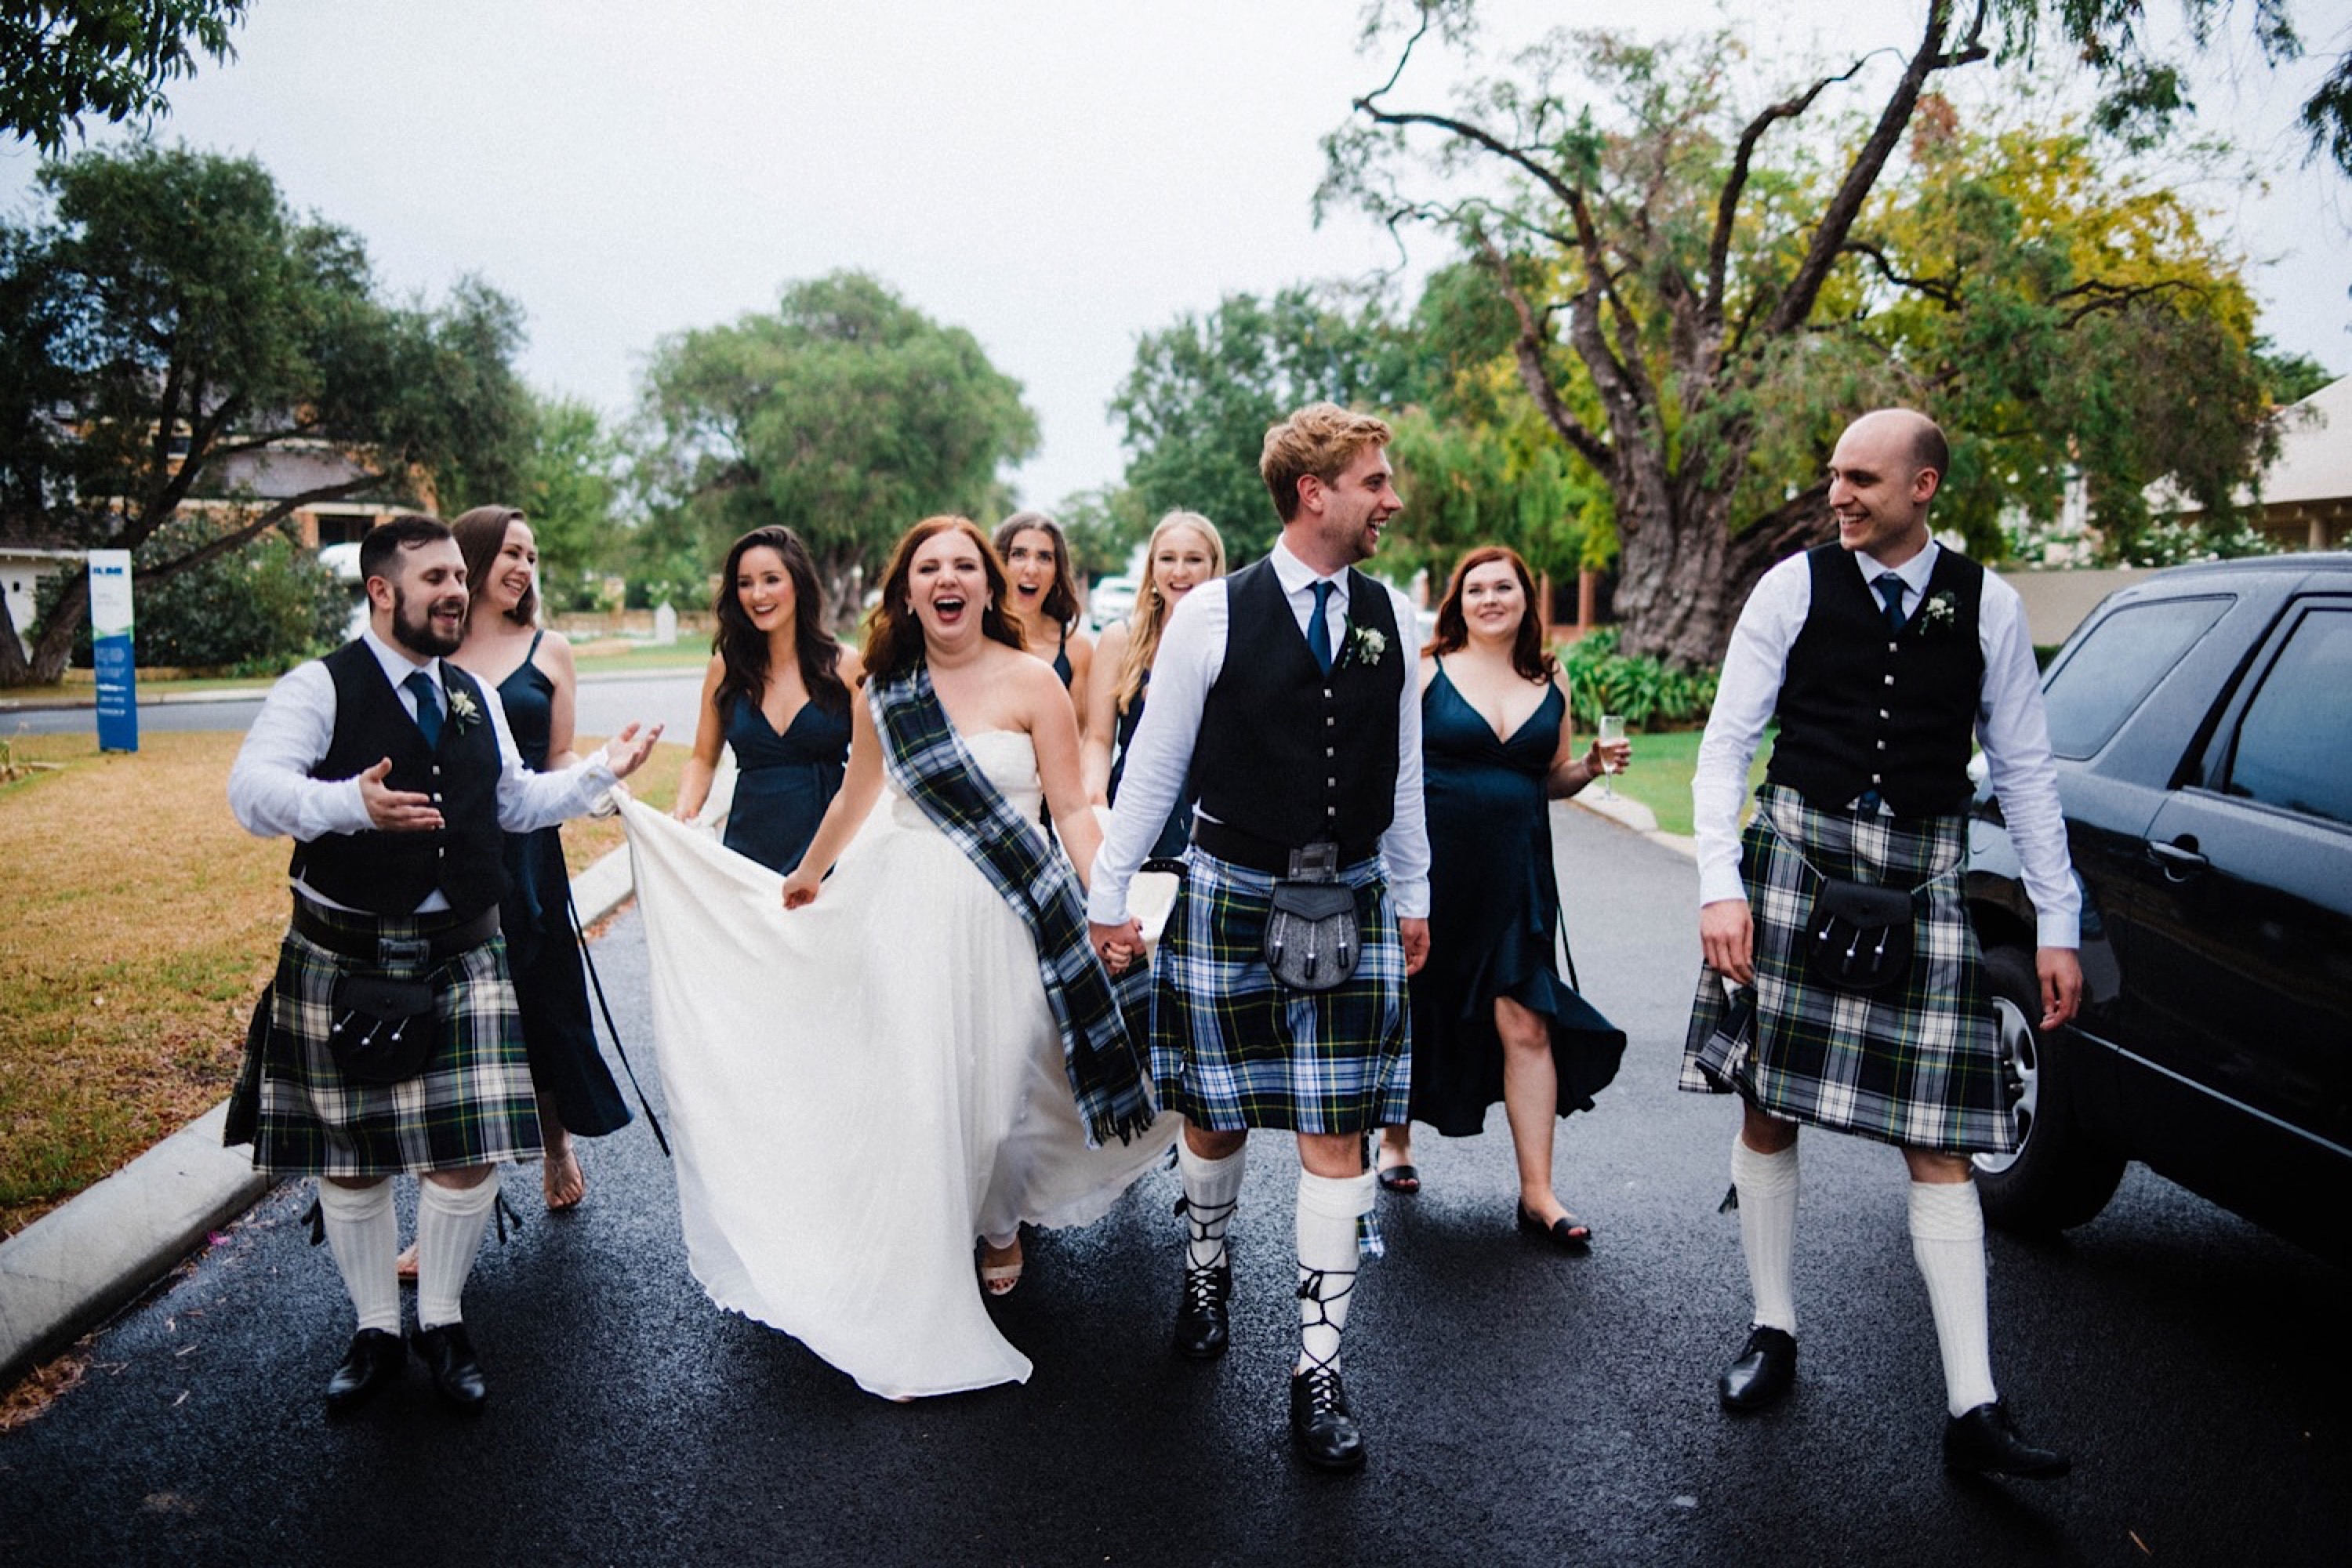 A documentary wedding portrait of the bride and her bridesmaids, the groom and his groomsmen who are wearing kilts, walking down a suburban street in the rain.